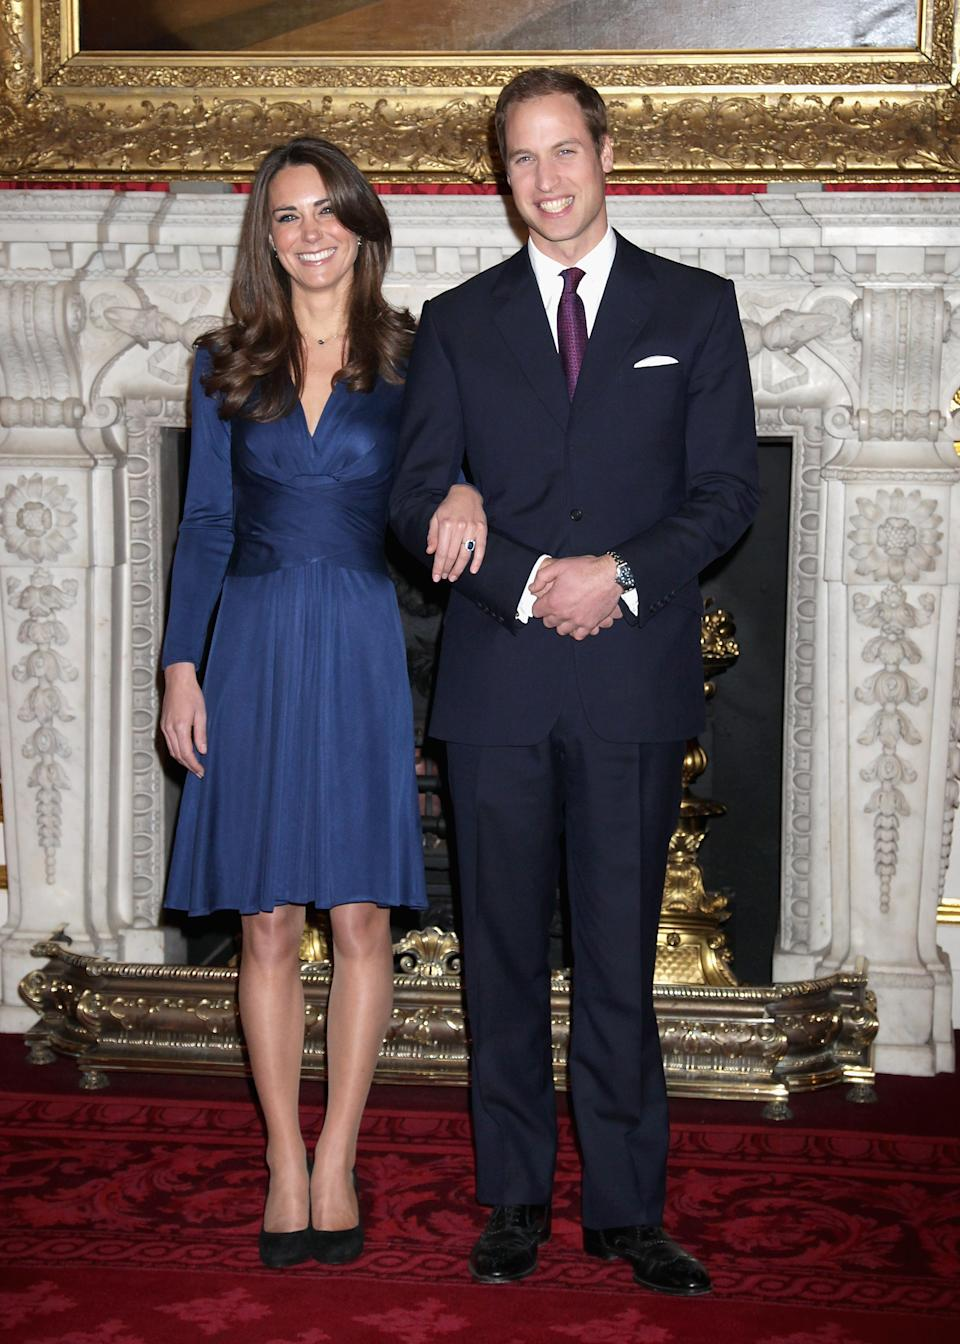 A royal expert has revealed the heartbreak surrounding Prince William and Kate Middleton's engagement. Photo: Getty